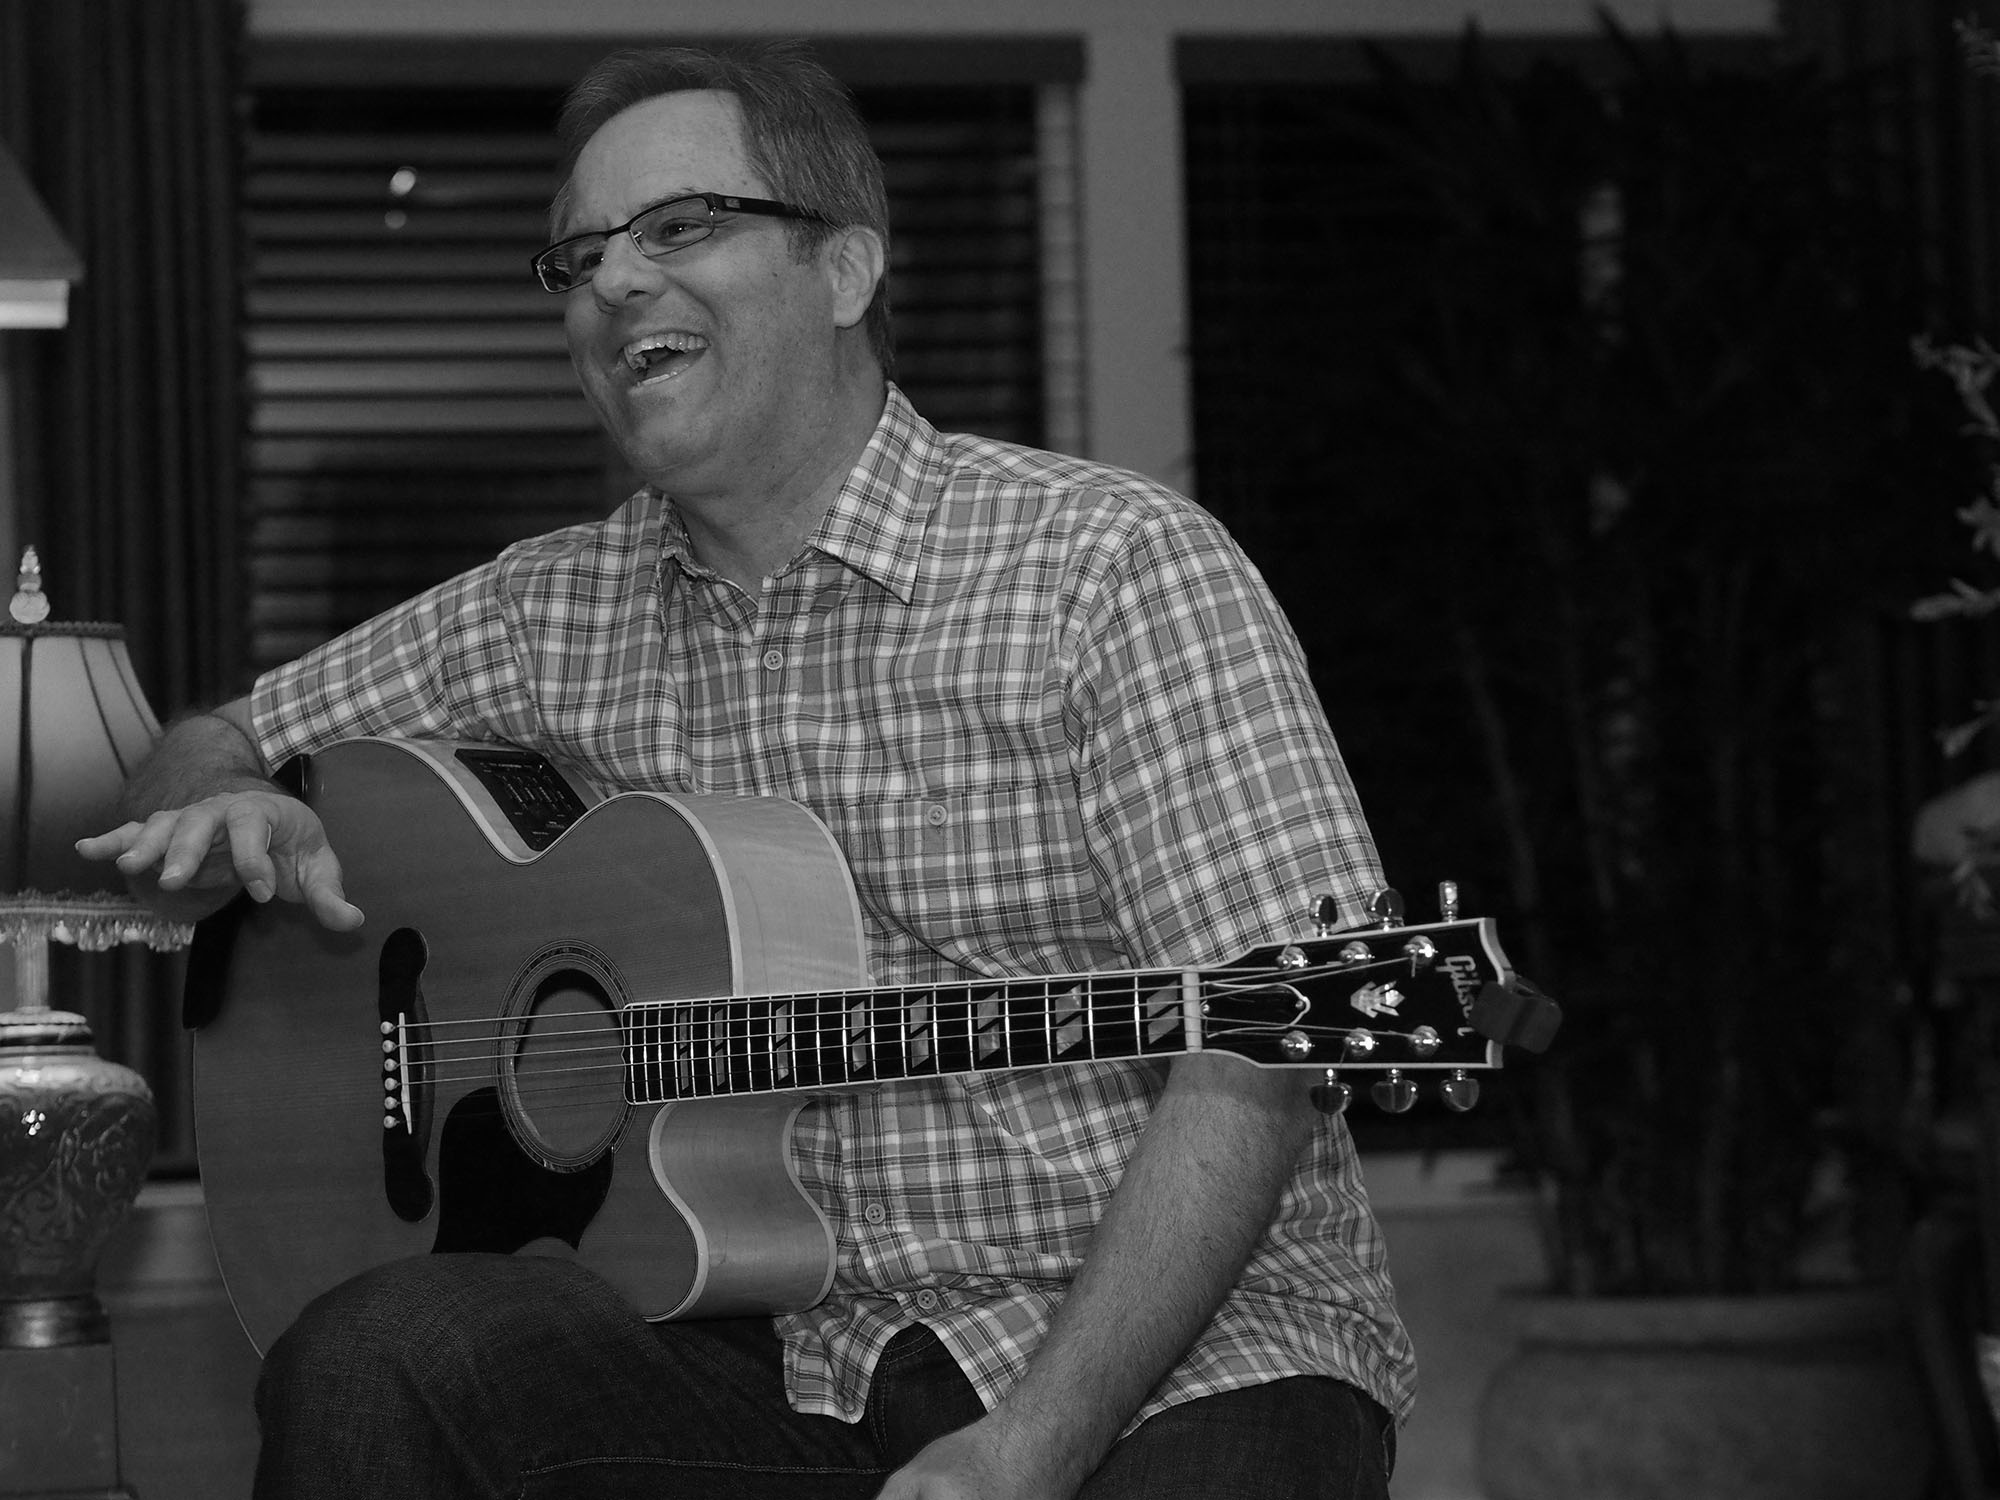 Russ Tapley: Acoustic Guitarist, Singer/Songwriter